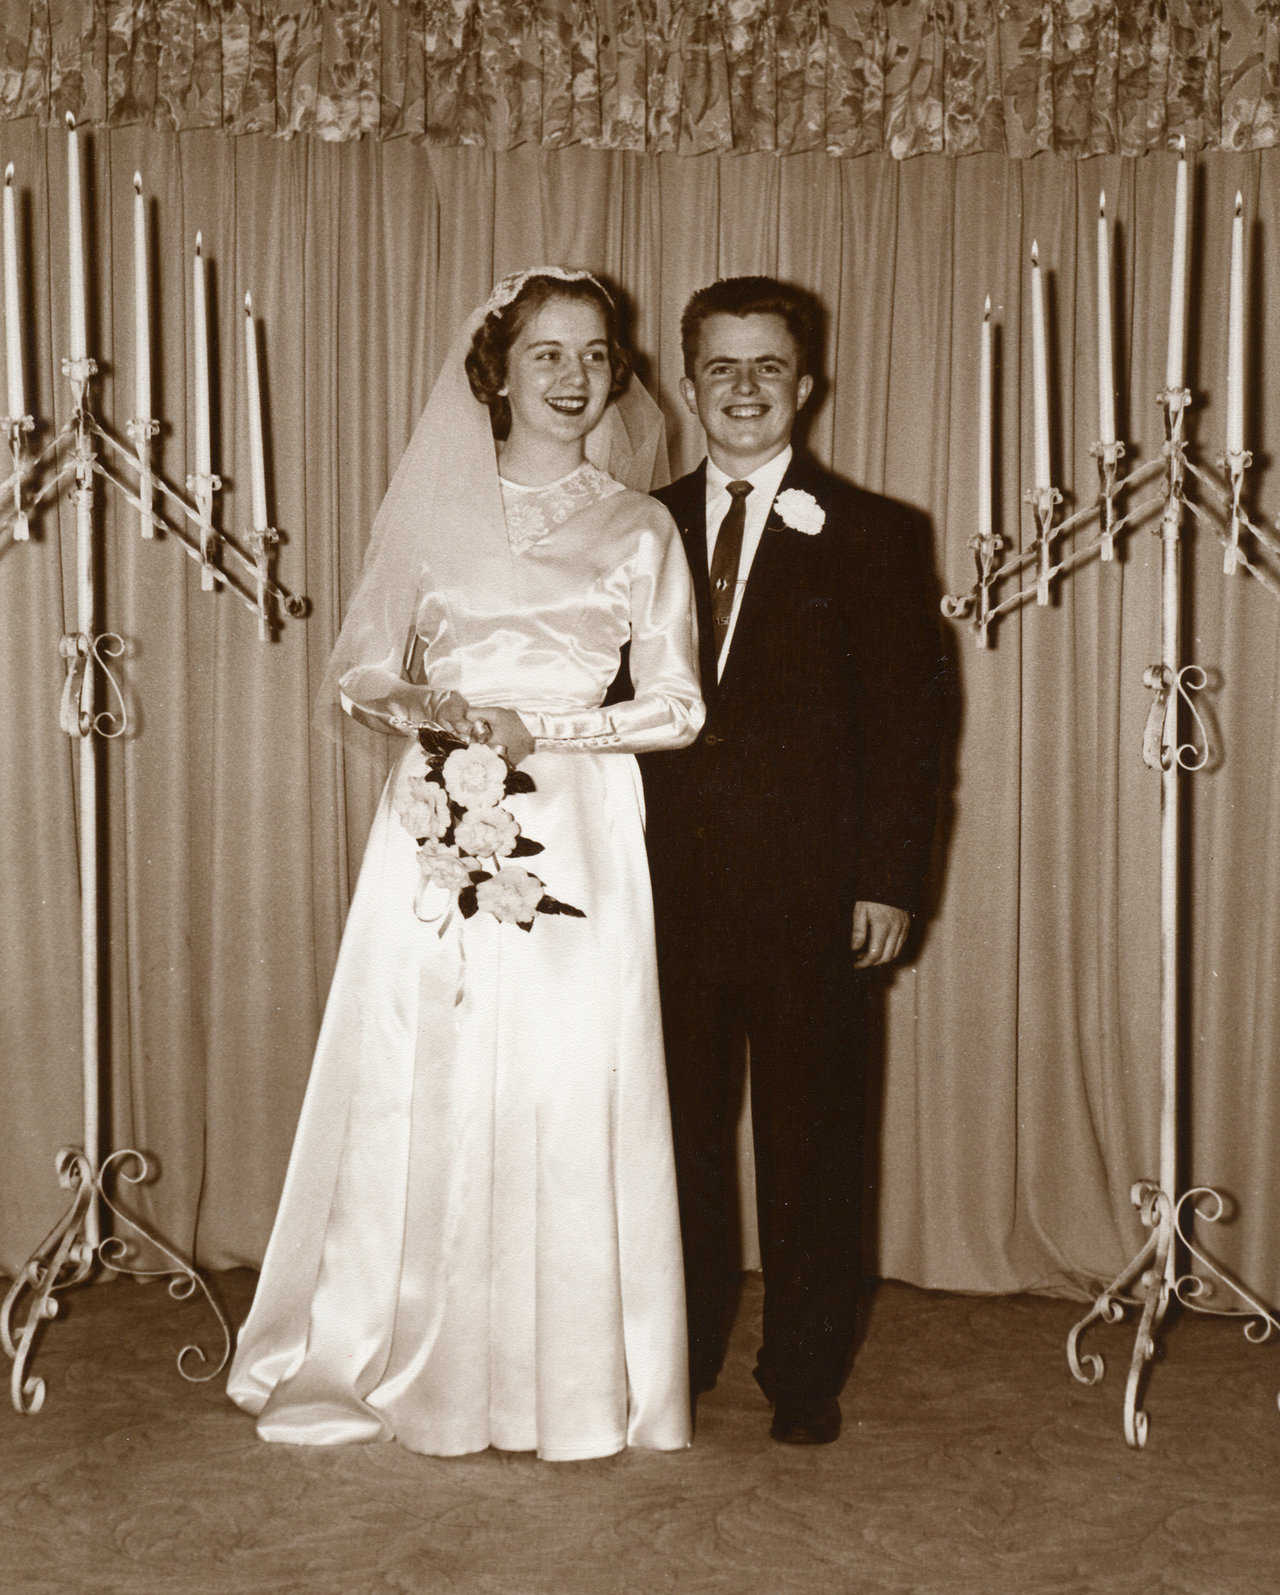 Judy and David B. South on their wedding day, February 20, 1959.